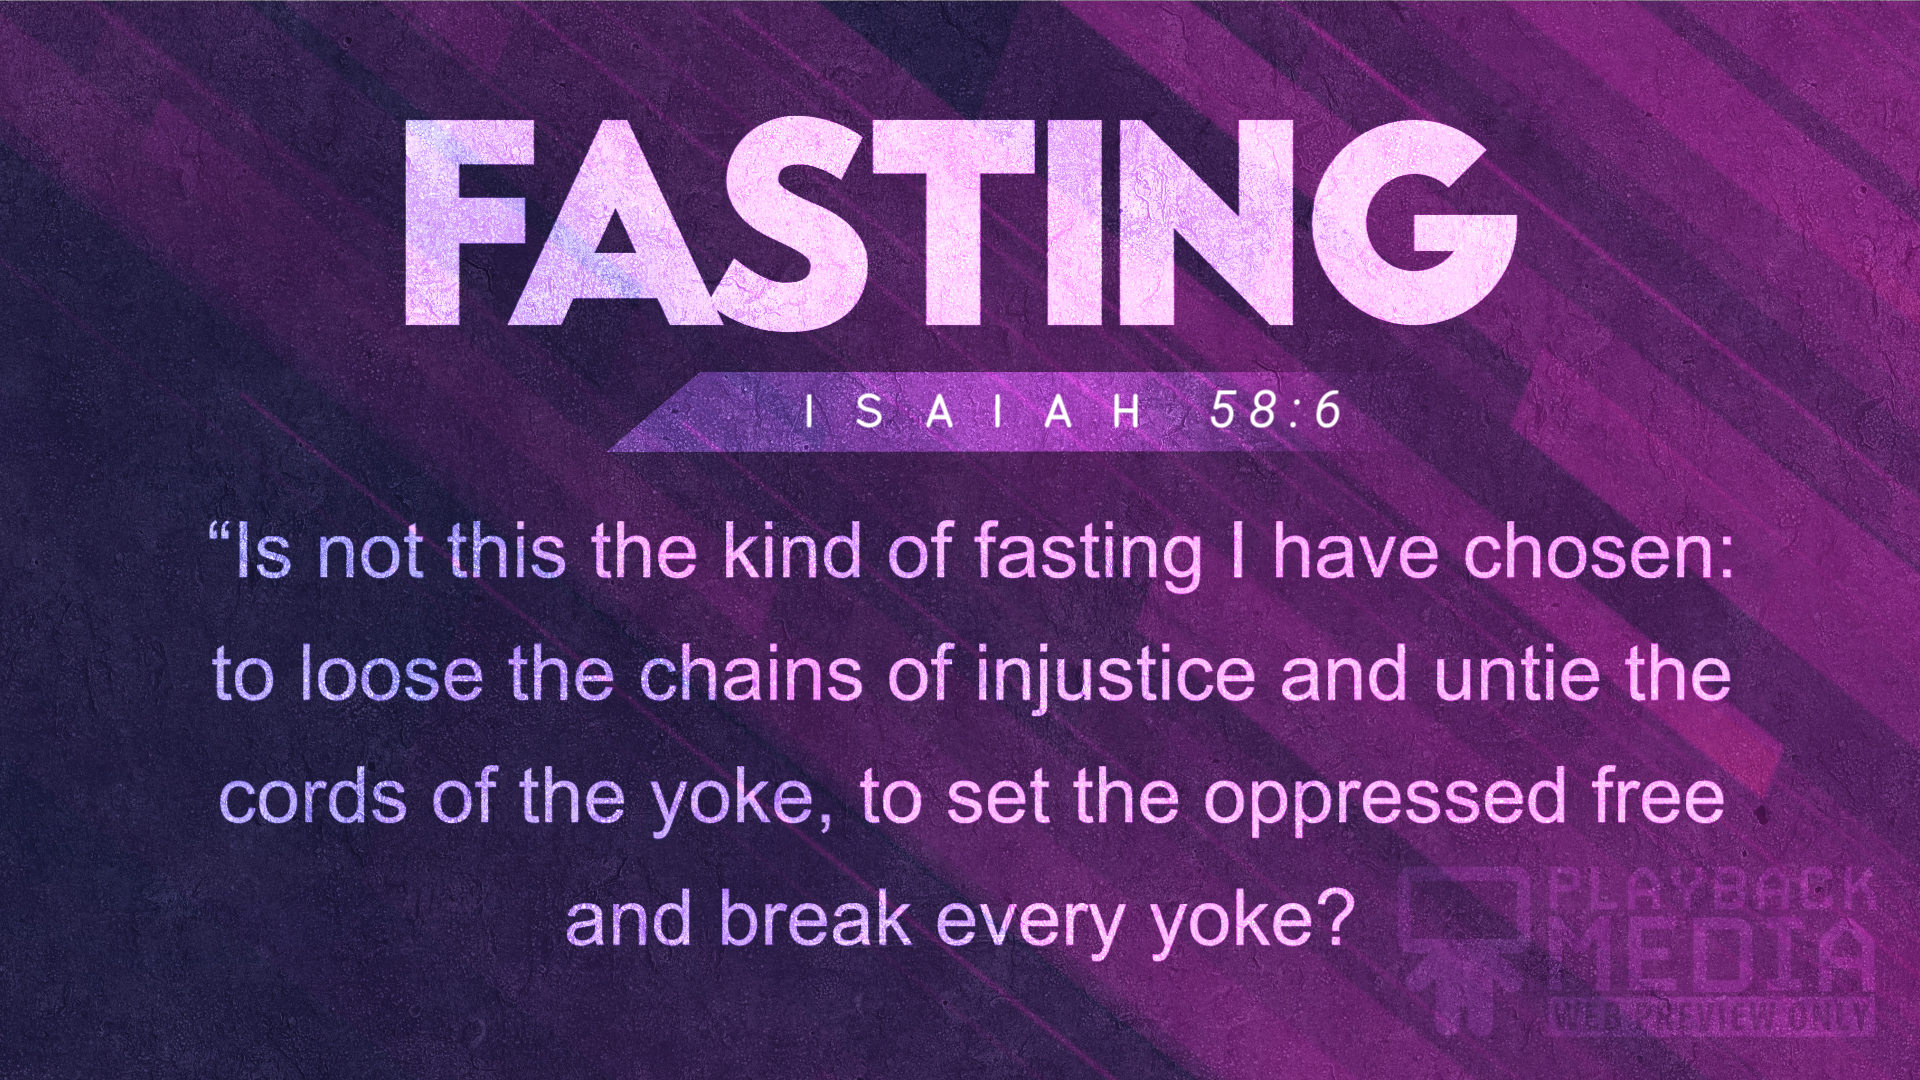 fasting motion background